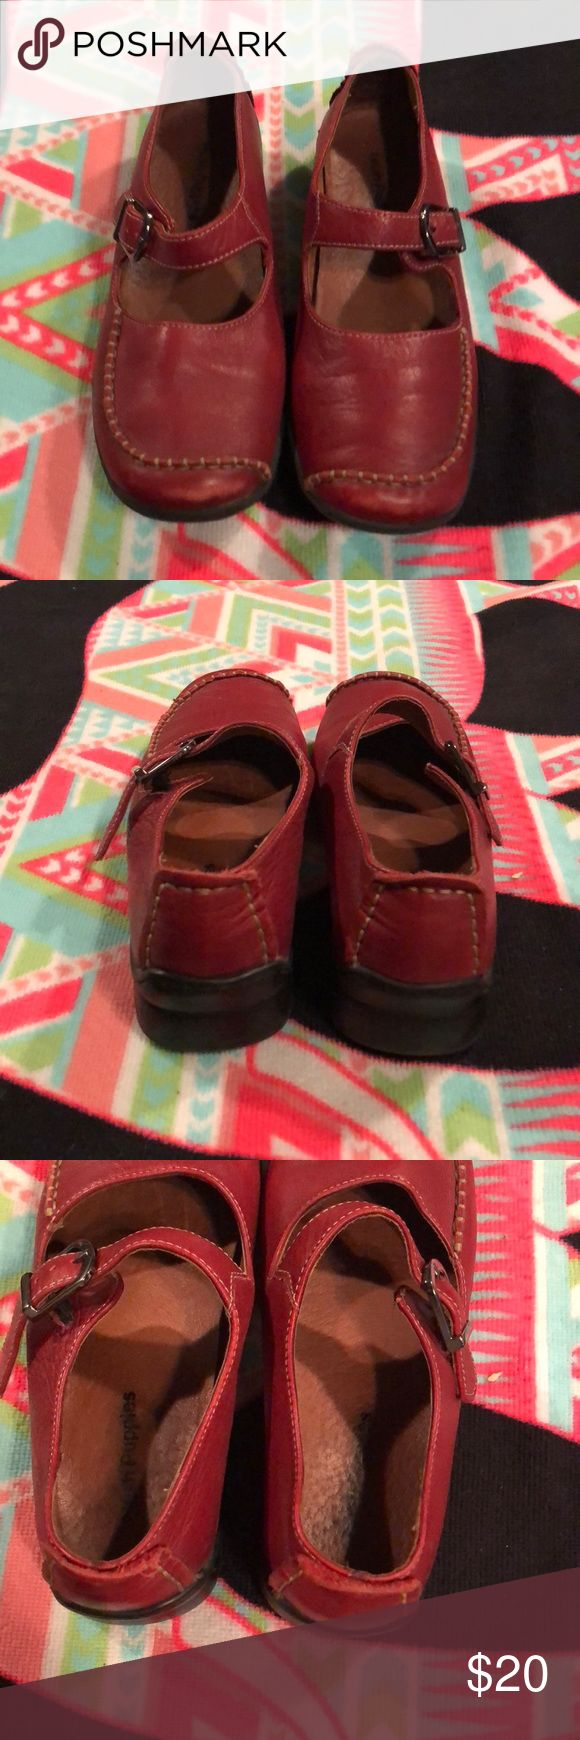 Read hush puppies size 9 1/2 Red hush puppies size 9 1/2 gently use Hush Puppies Shoes Slippers